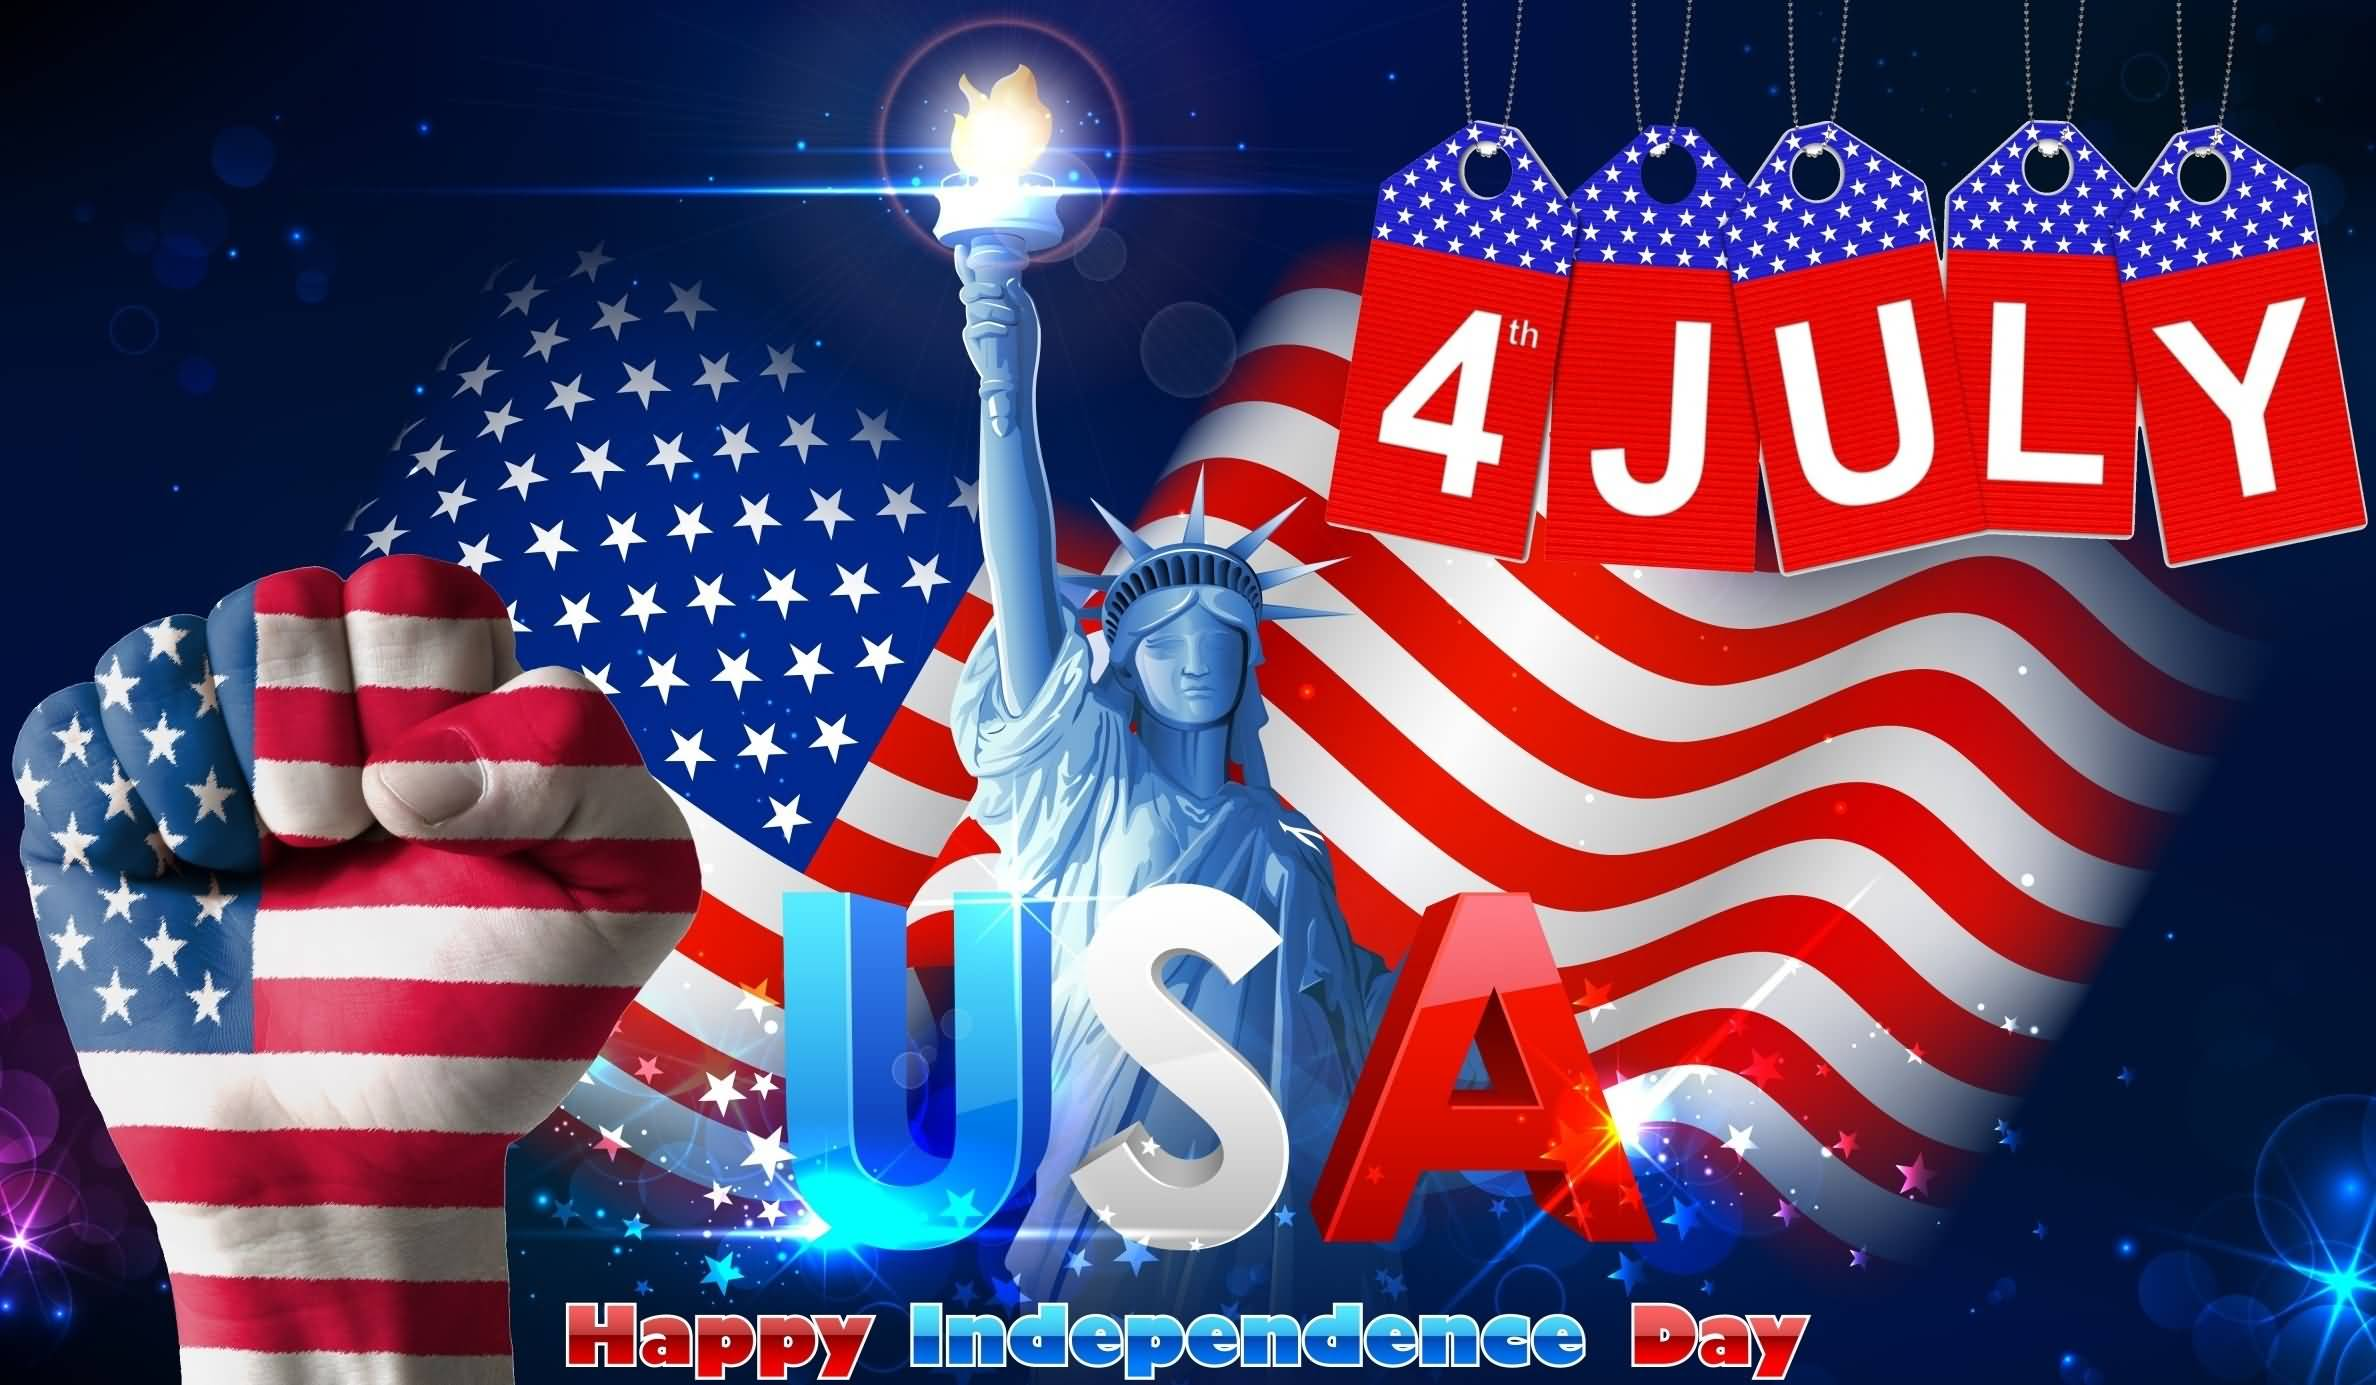 4th July USA Happy Independence Day